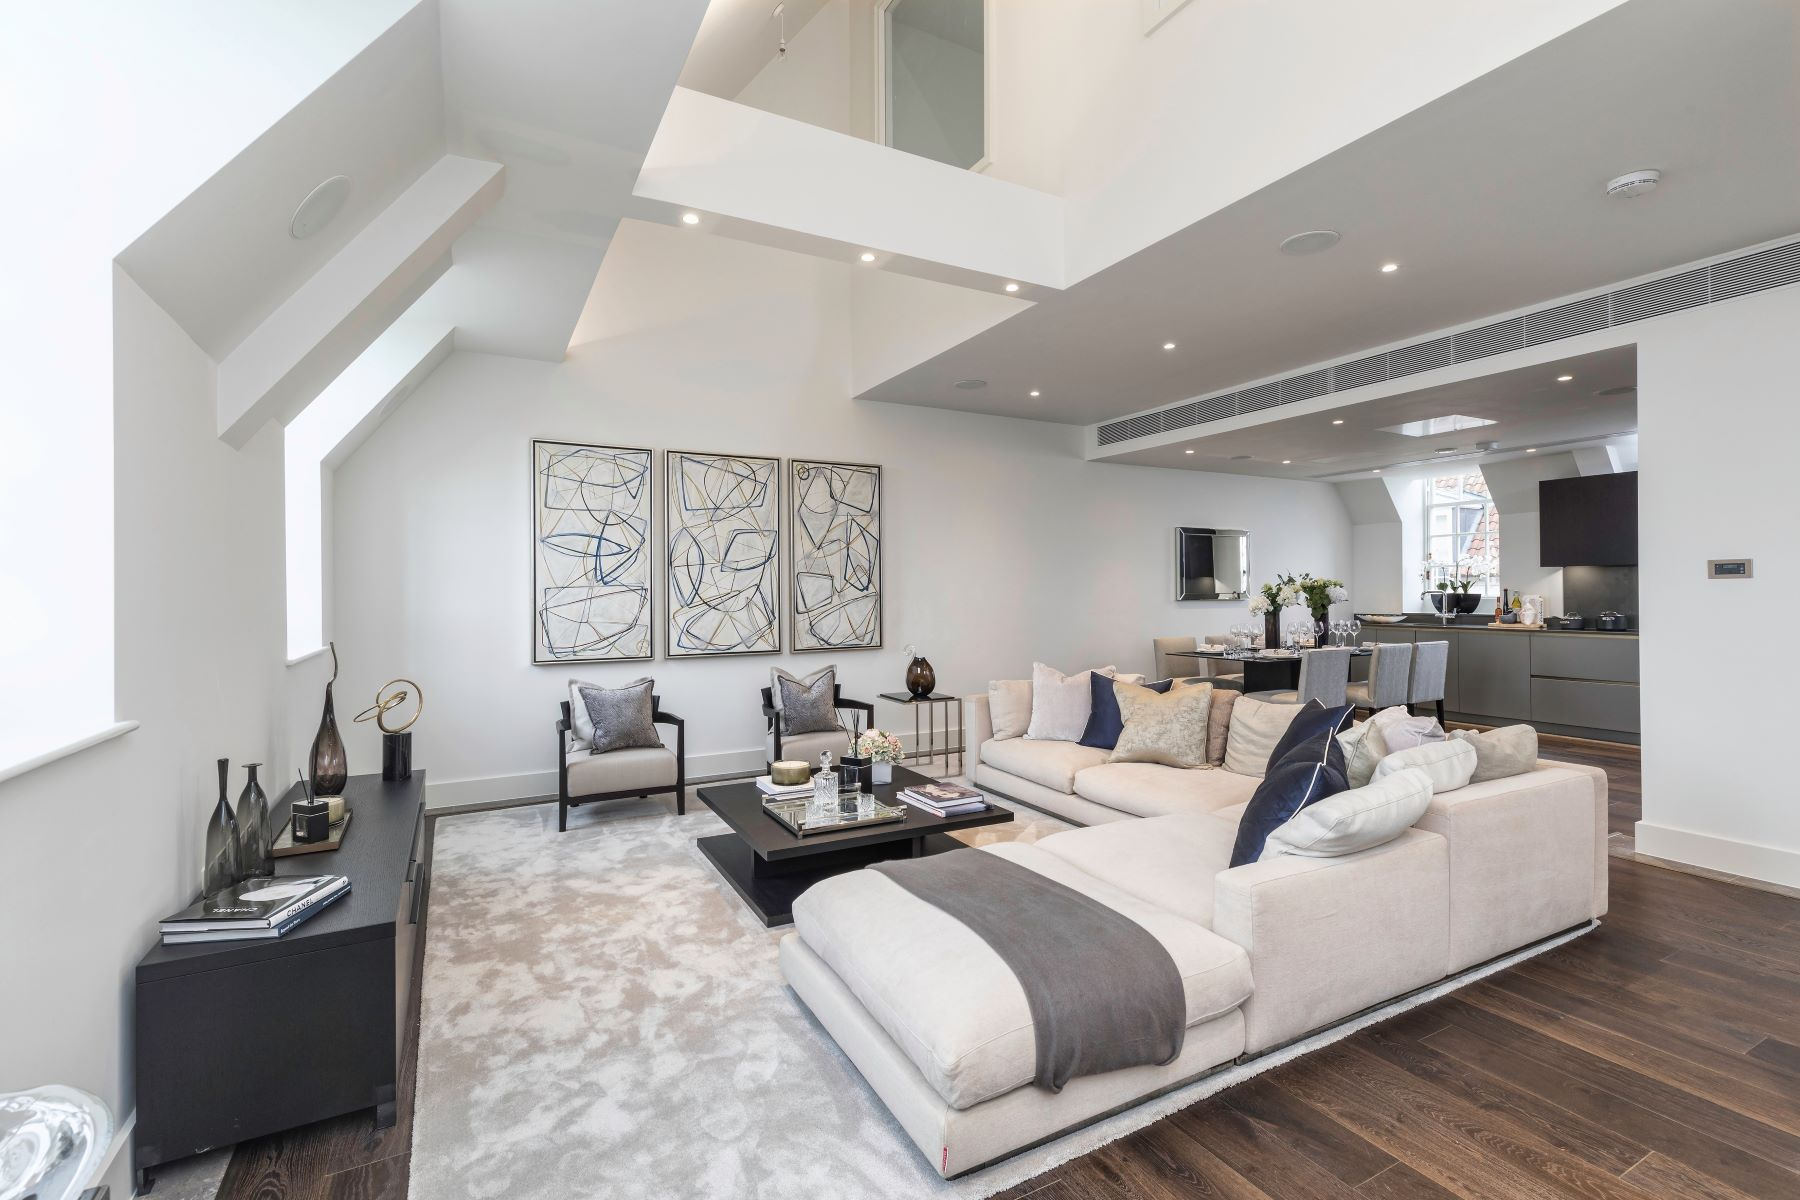 Apartments for Sale at Flat 78 Star and Garter House London, England TW10 6BF United Kingdom